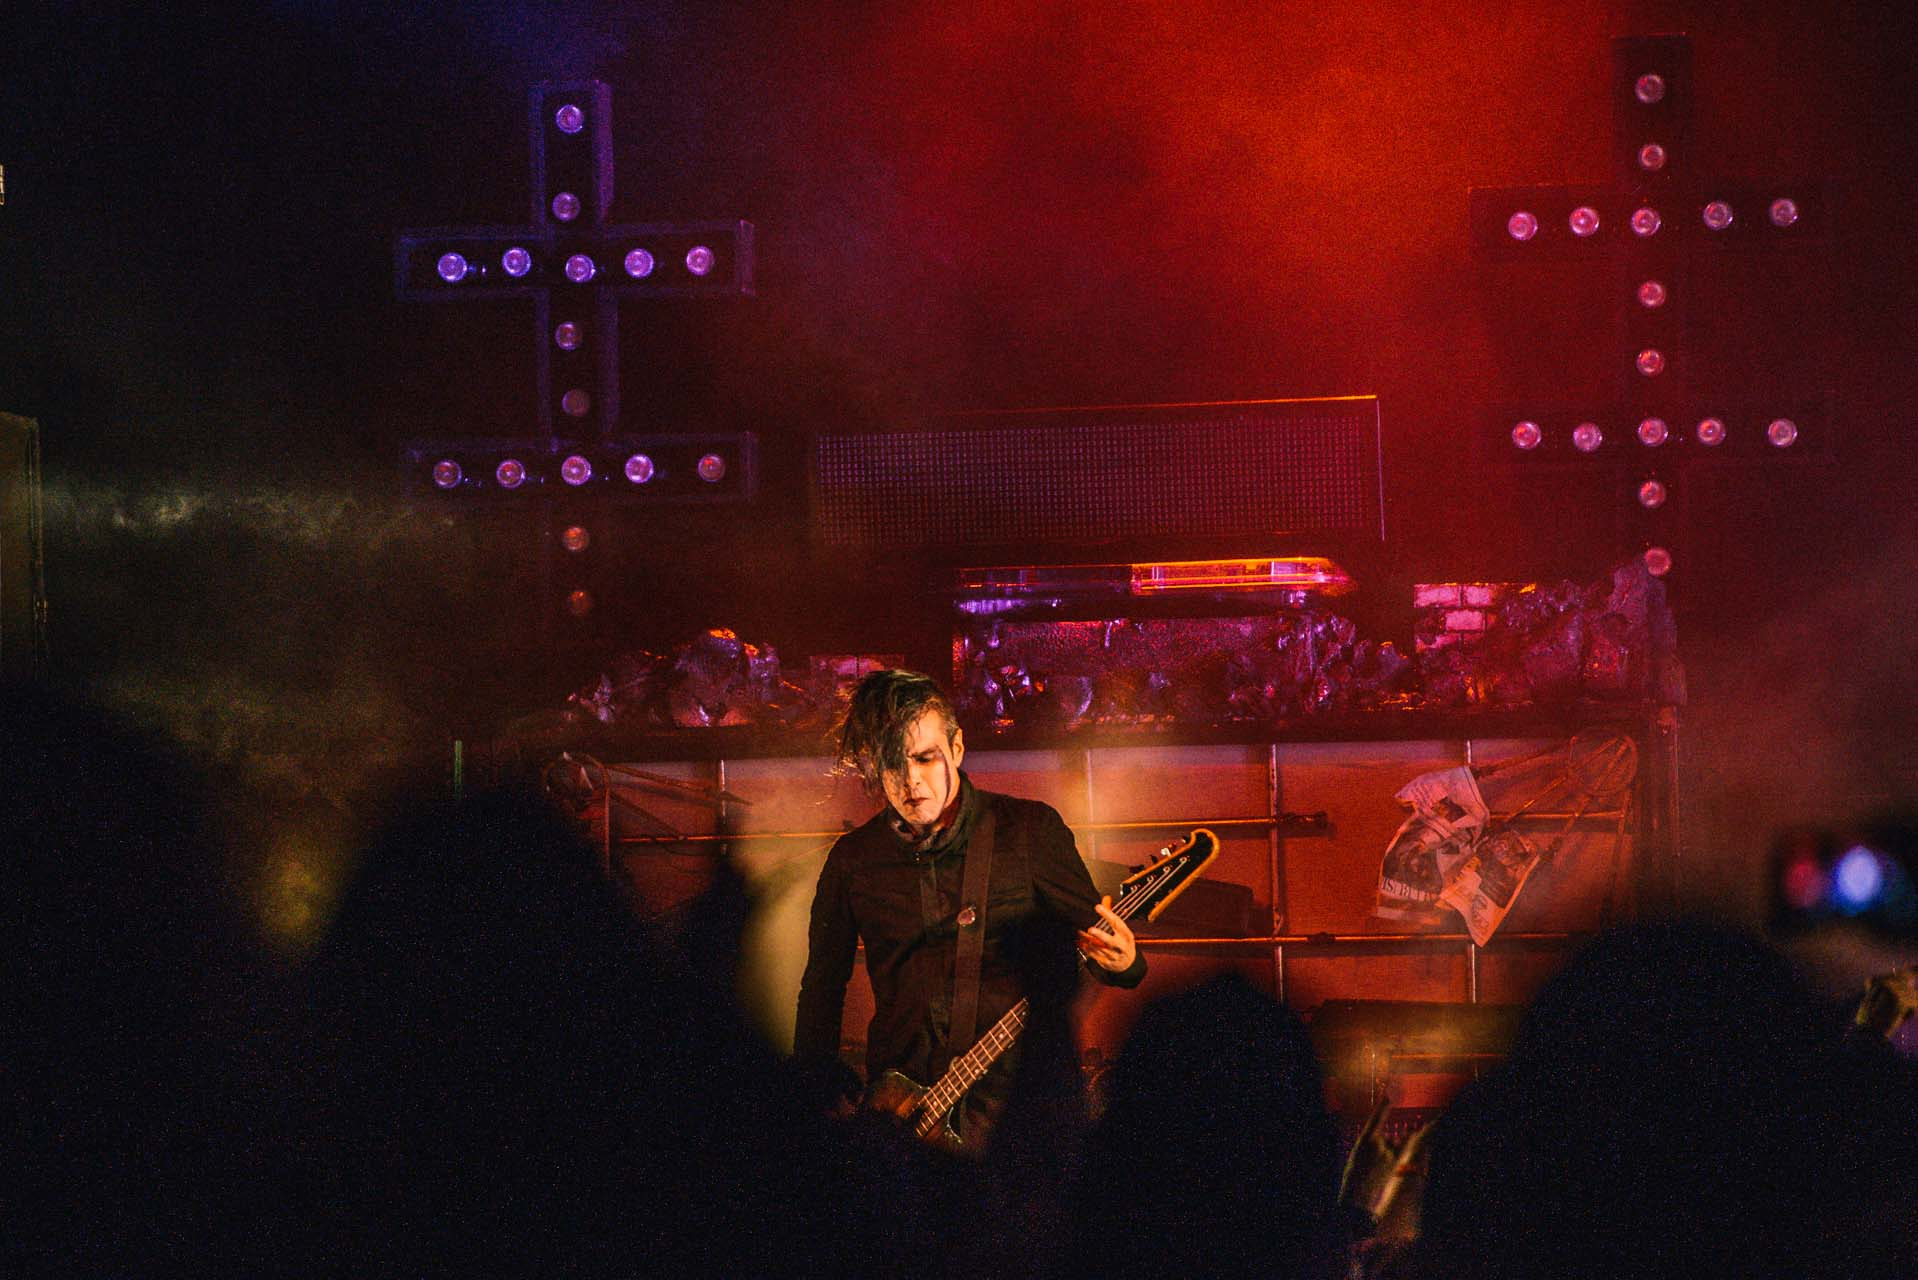 marilyn_manson_live_egyptian_room_indianapolis_2013-11